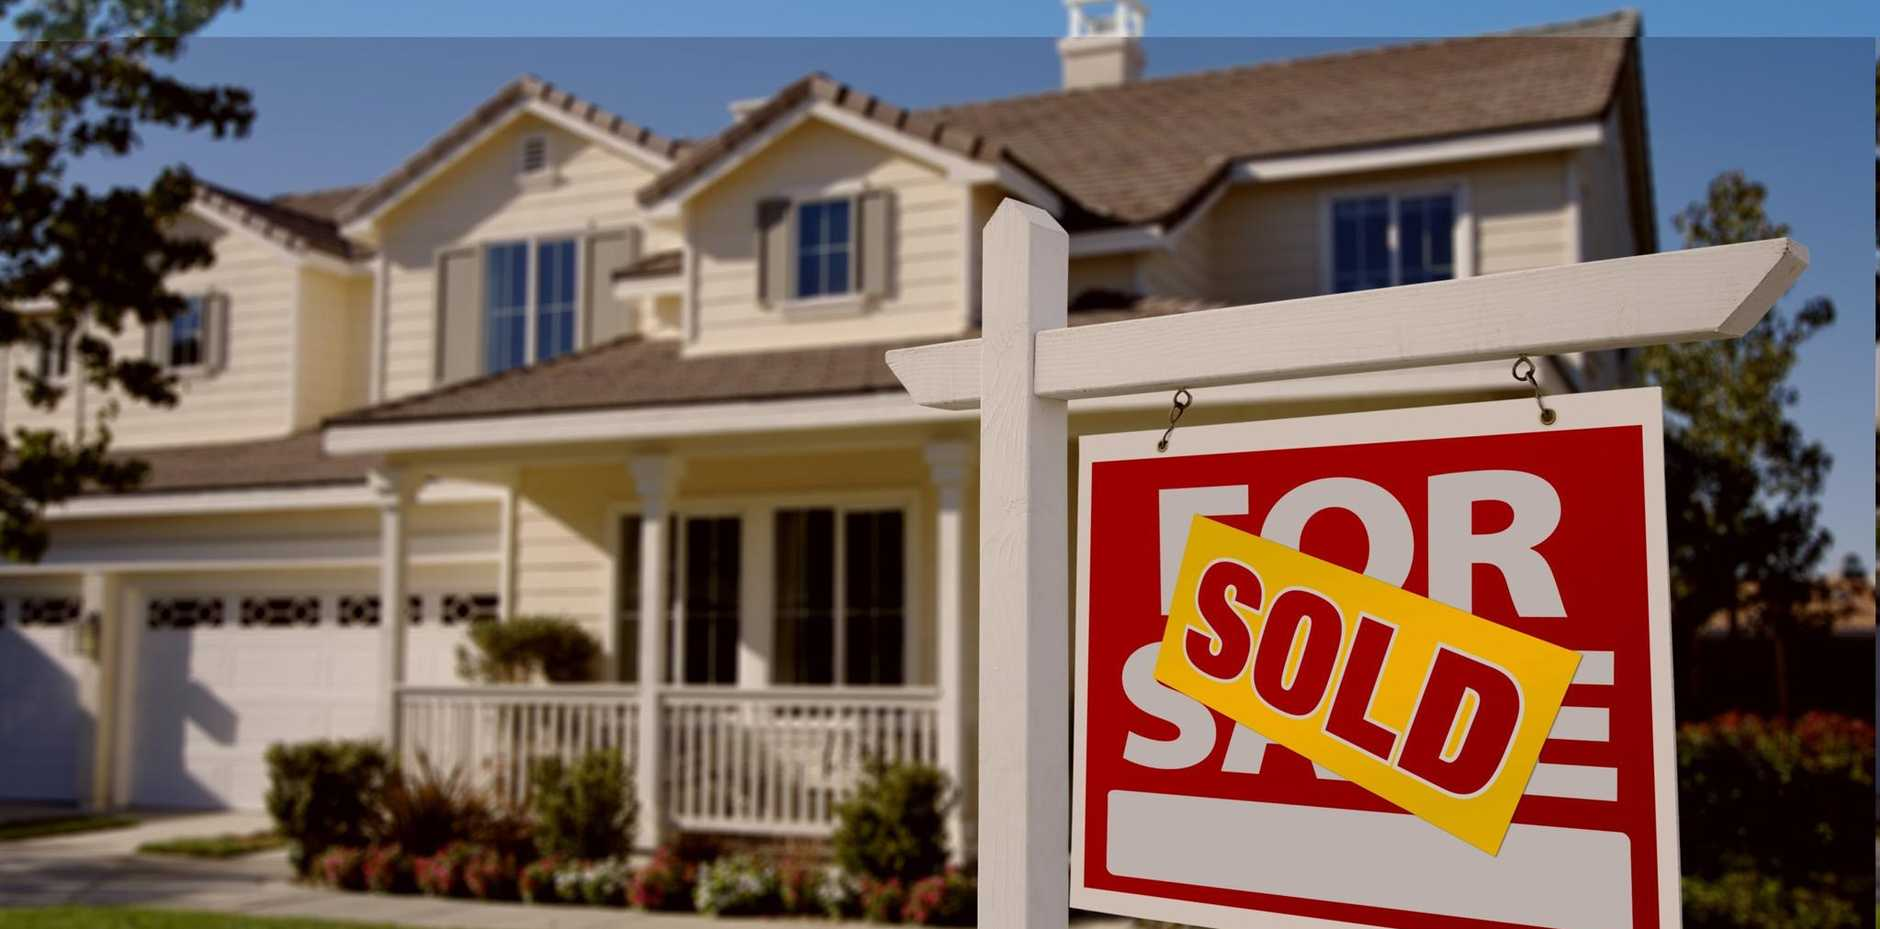 The key to selling your home for more is to reach the highest number of potential buyers